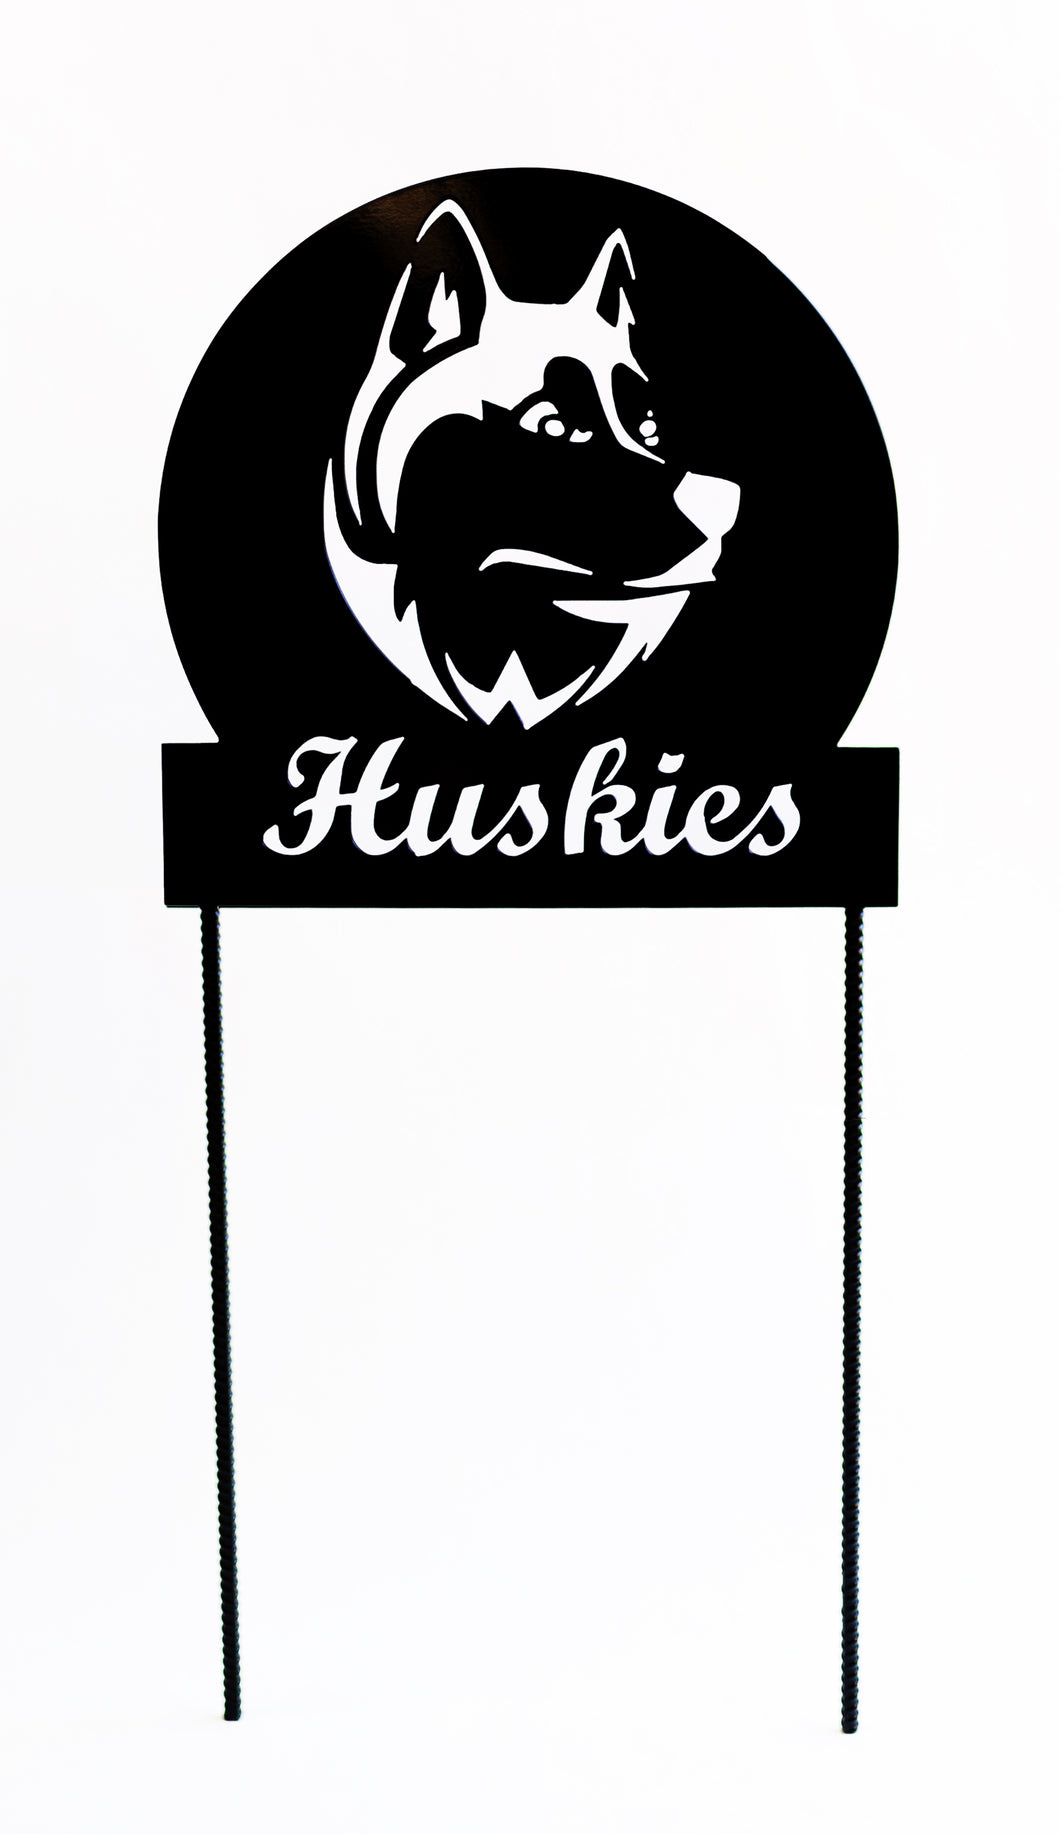 Huskie Yard Sign